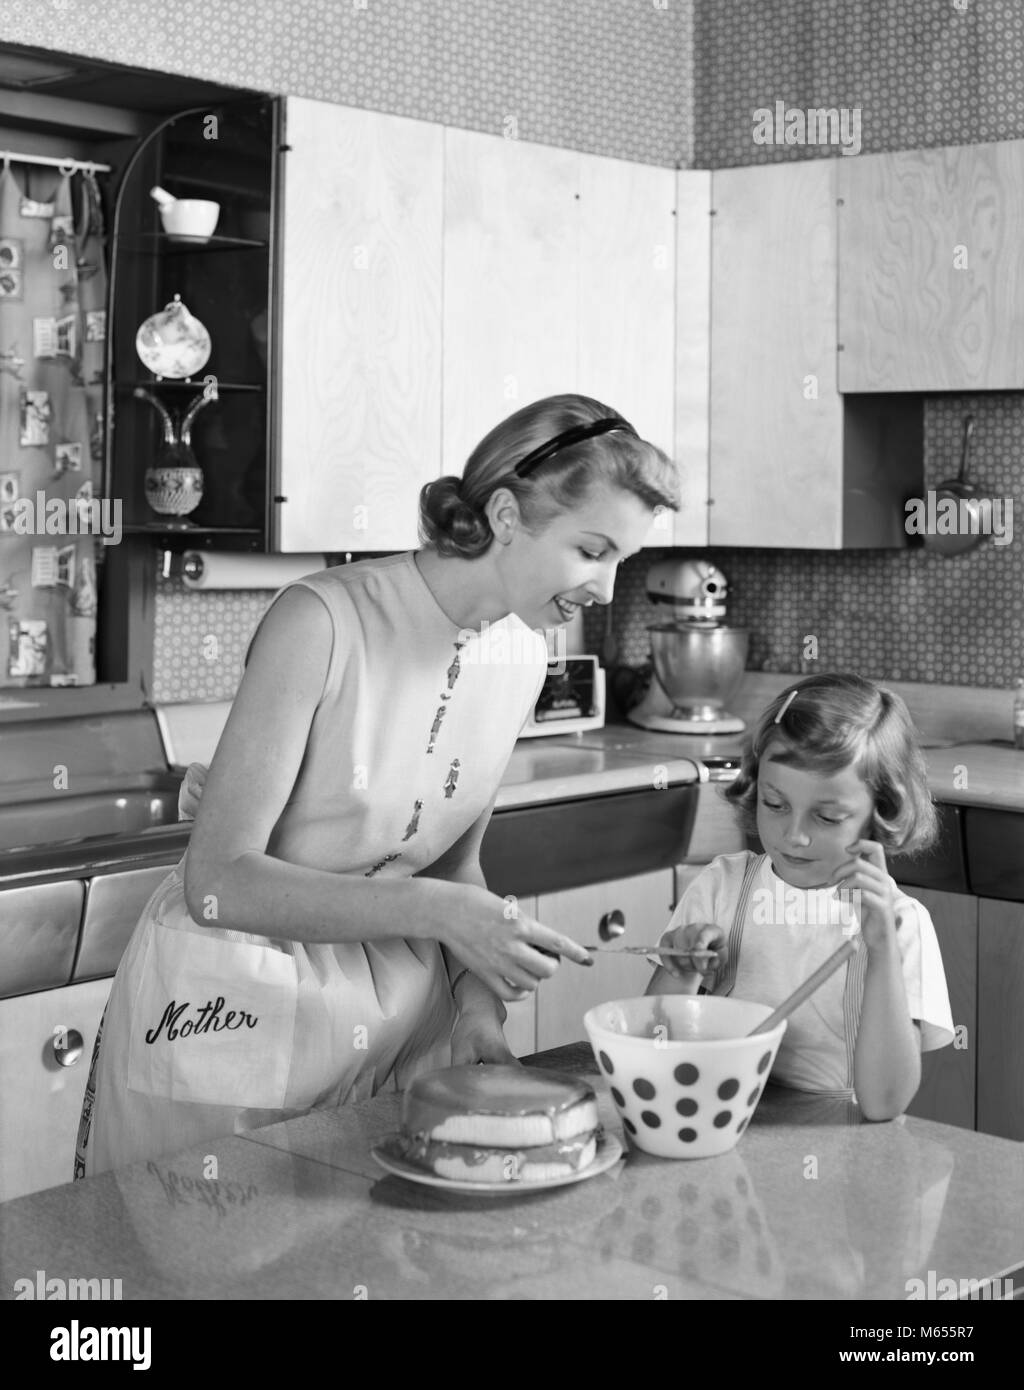 Vintage Schürze Küche 1950s Housewives Stockfotos And 1950s Housewives Bilder Alamy